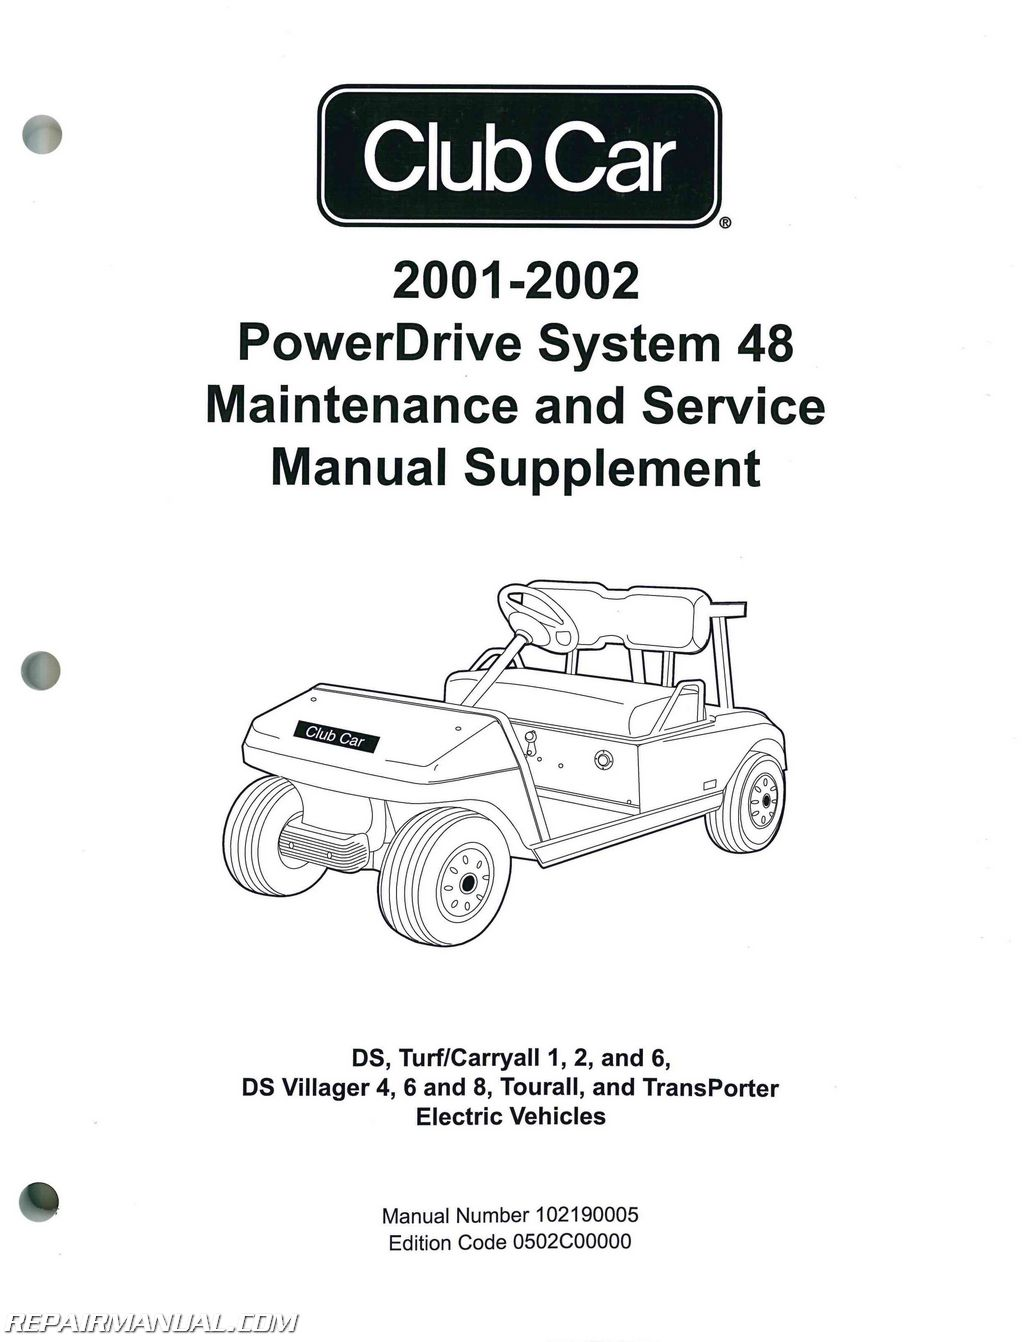 2001-2002 Club Car PowerDrive System 48 Maintenance And